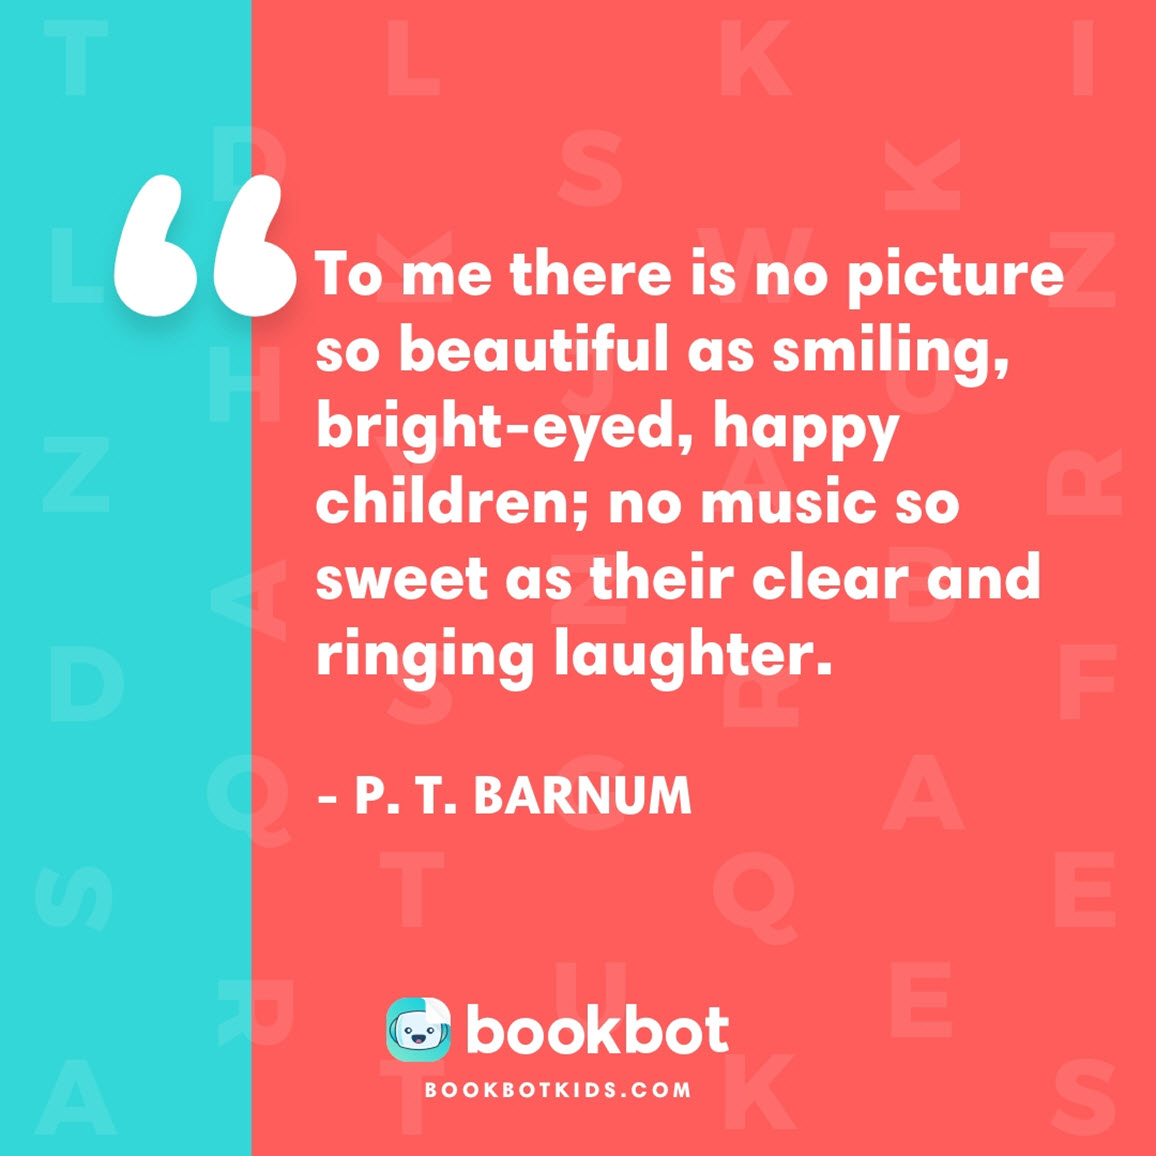 To me there is no picture so beautiful as smiling, bright-eyed, happy children; no music so sweet as their clear and ringing laughter. – P. T. Barnum